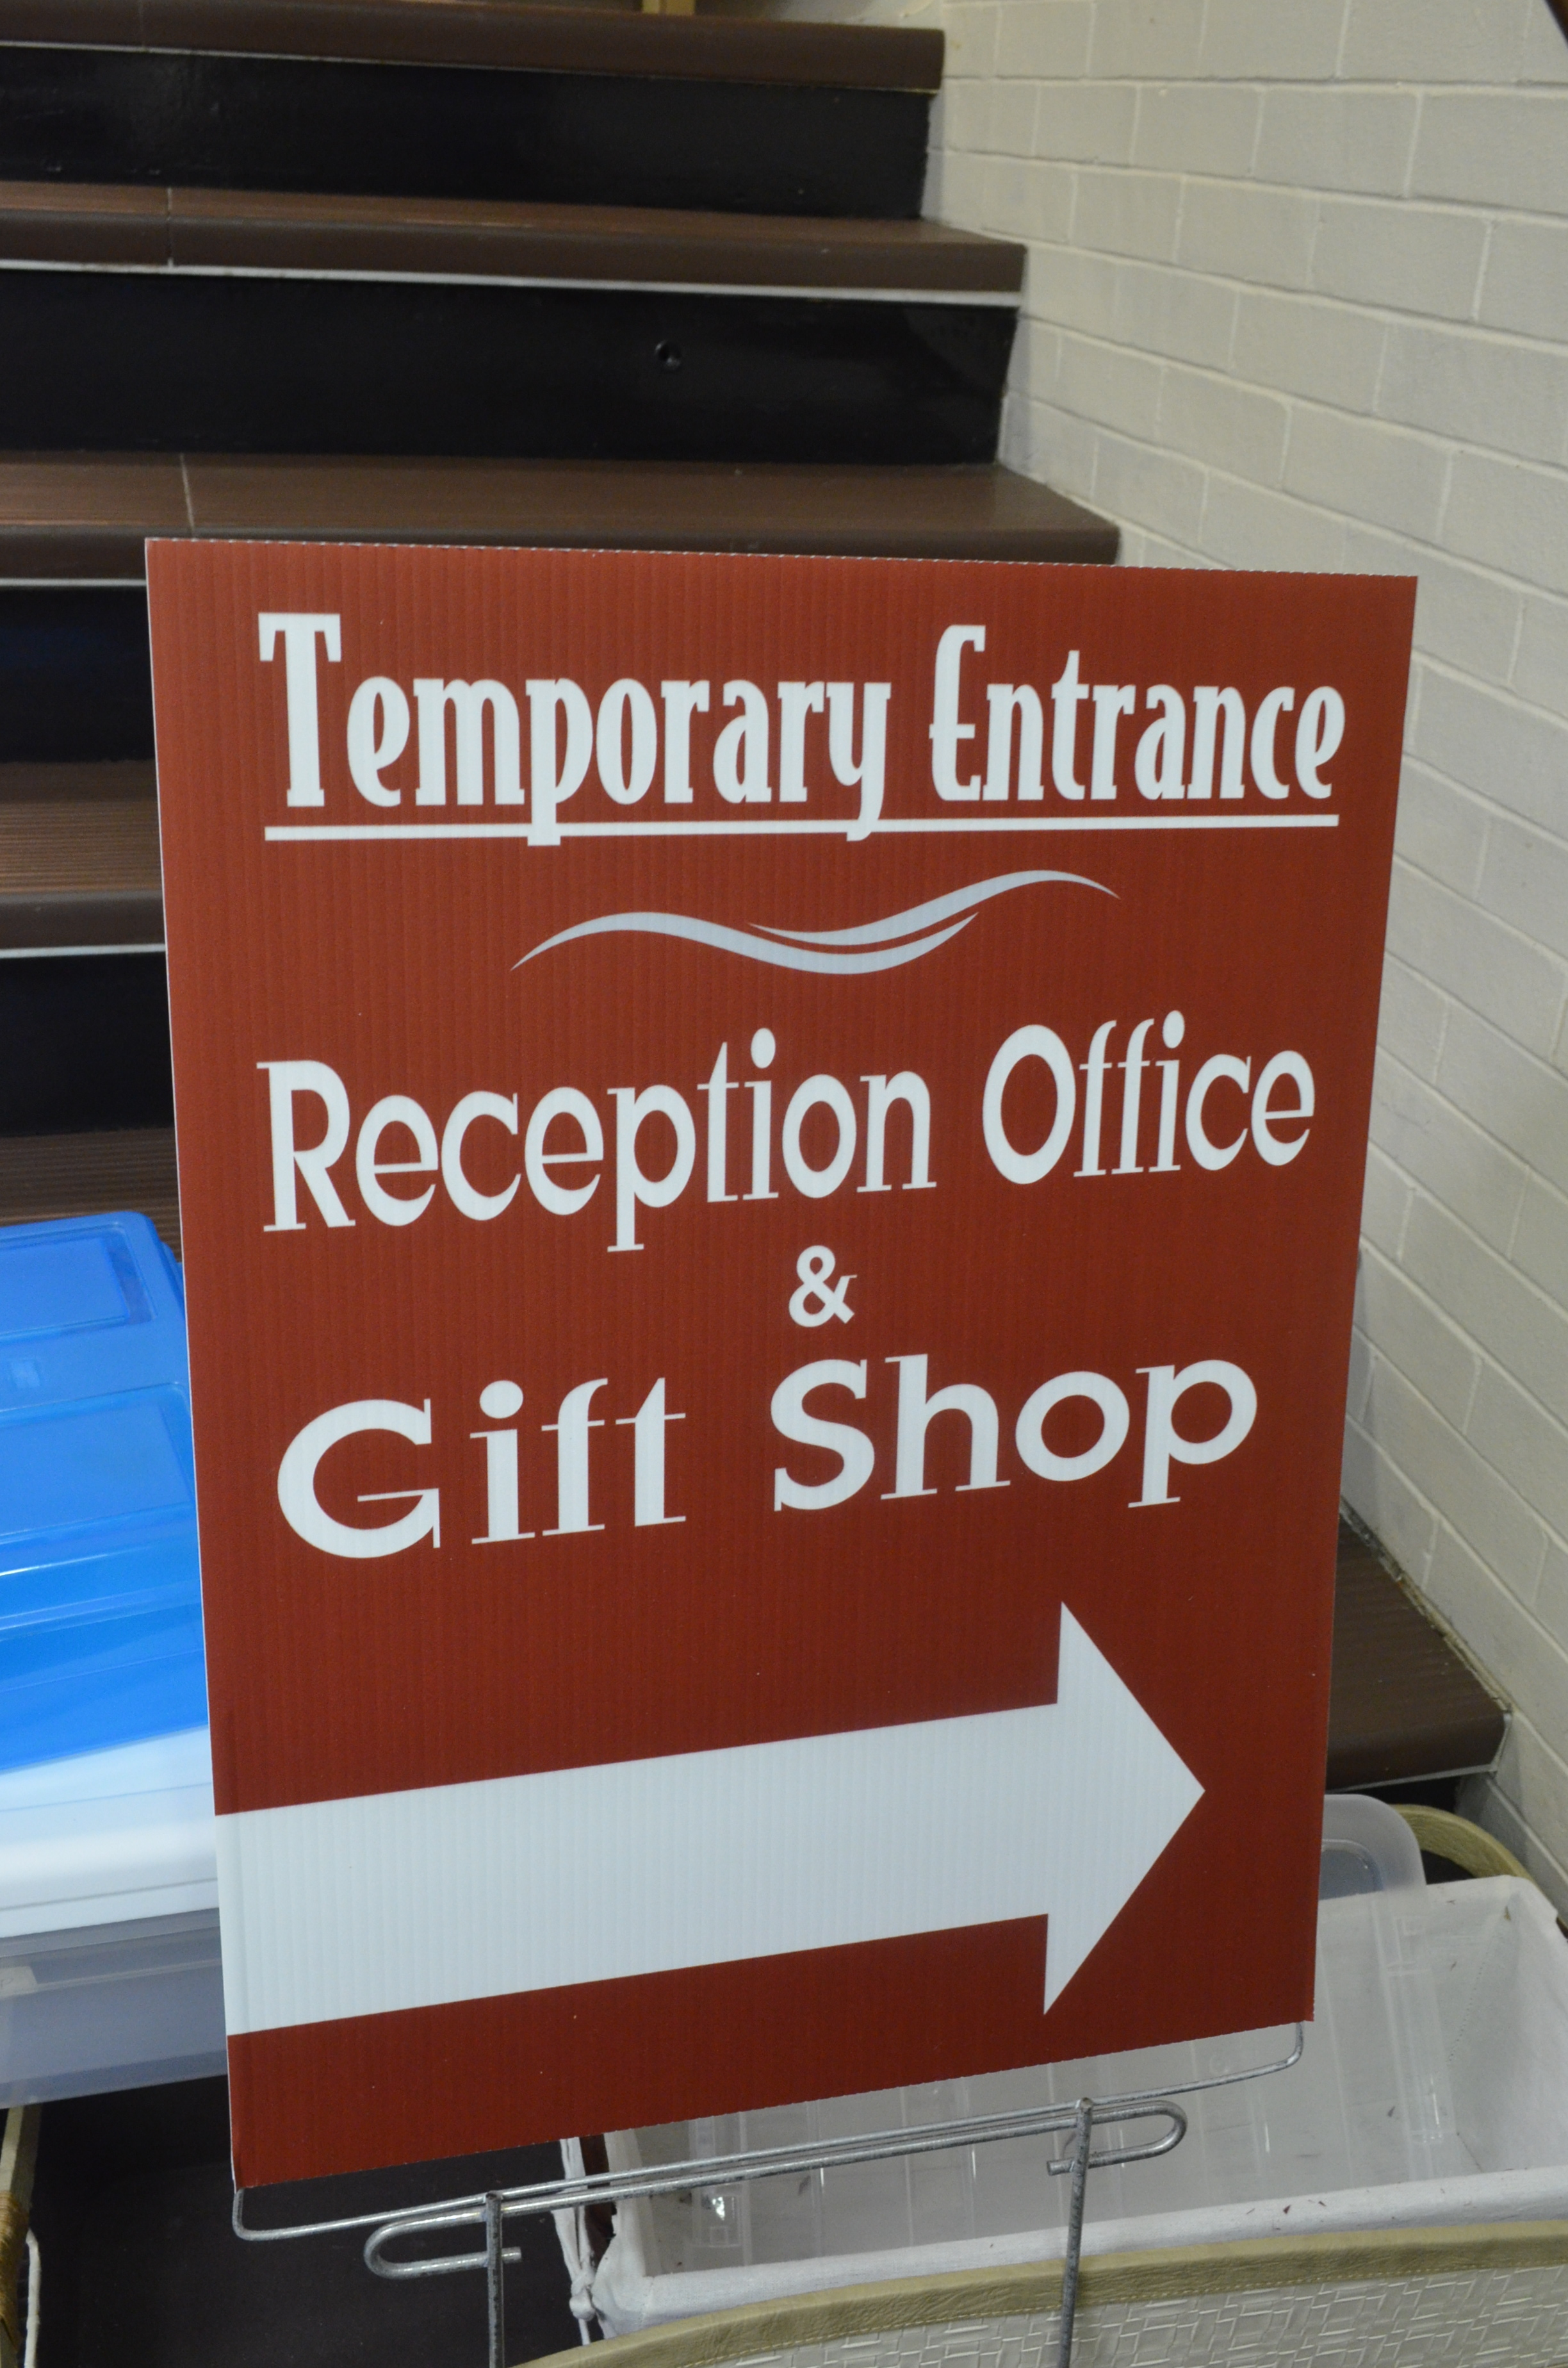 Look for this sign outside to find your way to the new gift shop